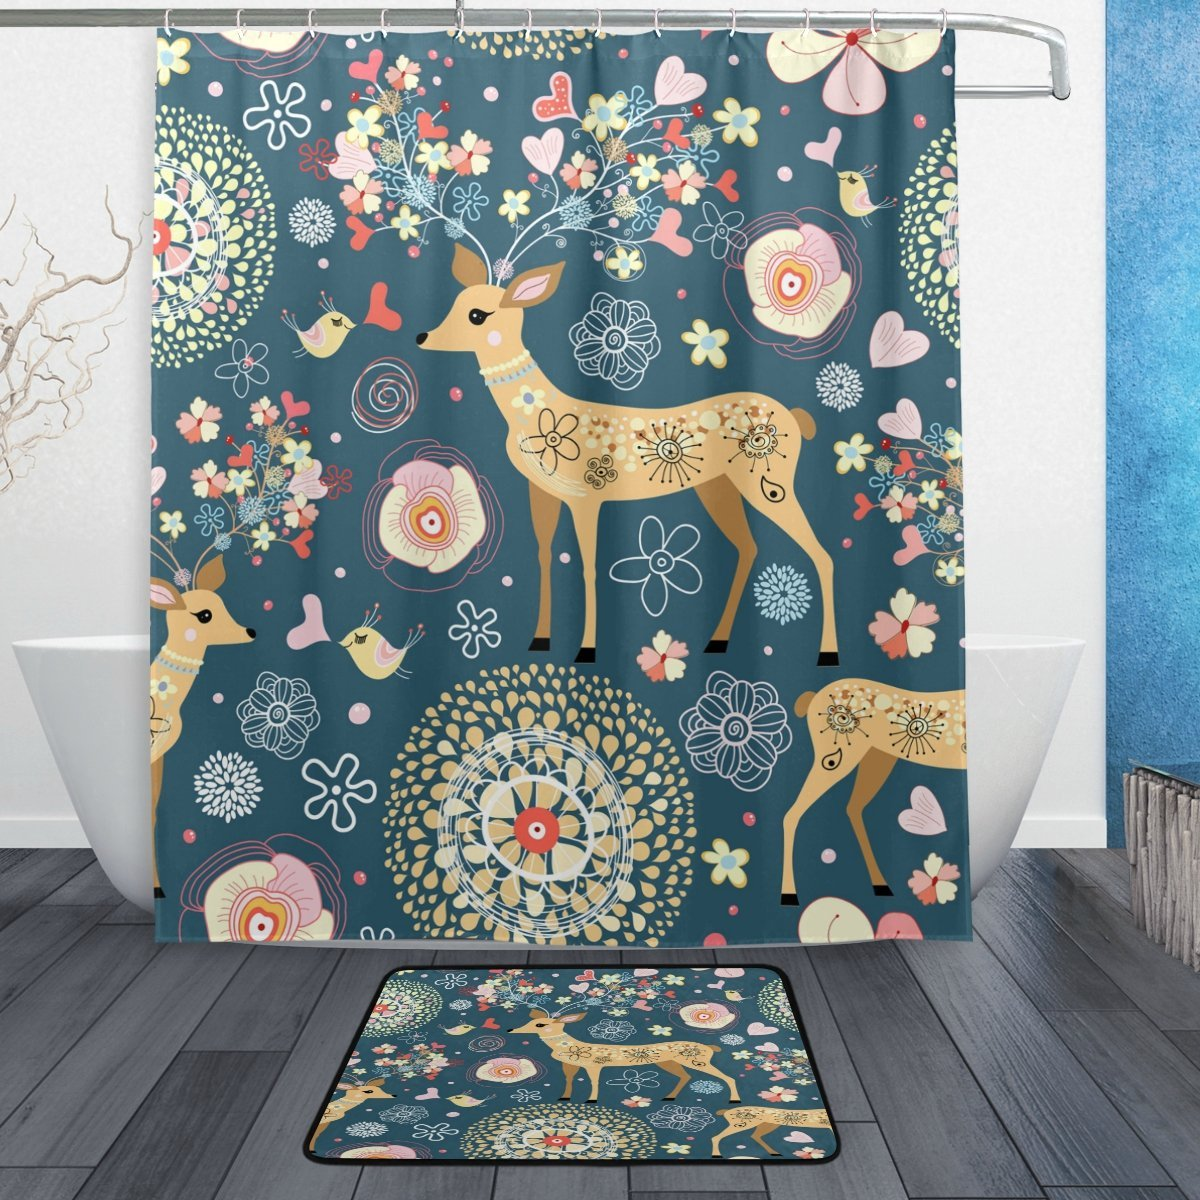 Vintage Floral Deer Abstract Flower Waterproof Polyester Fabric Shower Curtain Set With Hooks Doormat Bath Floor Mat Bathroom In Curtains From Home